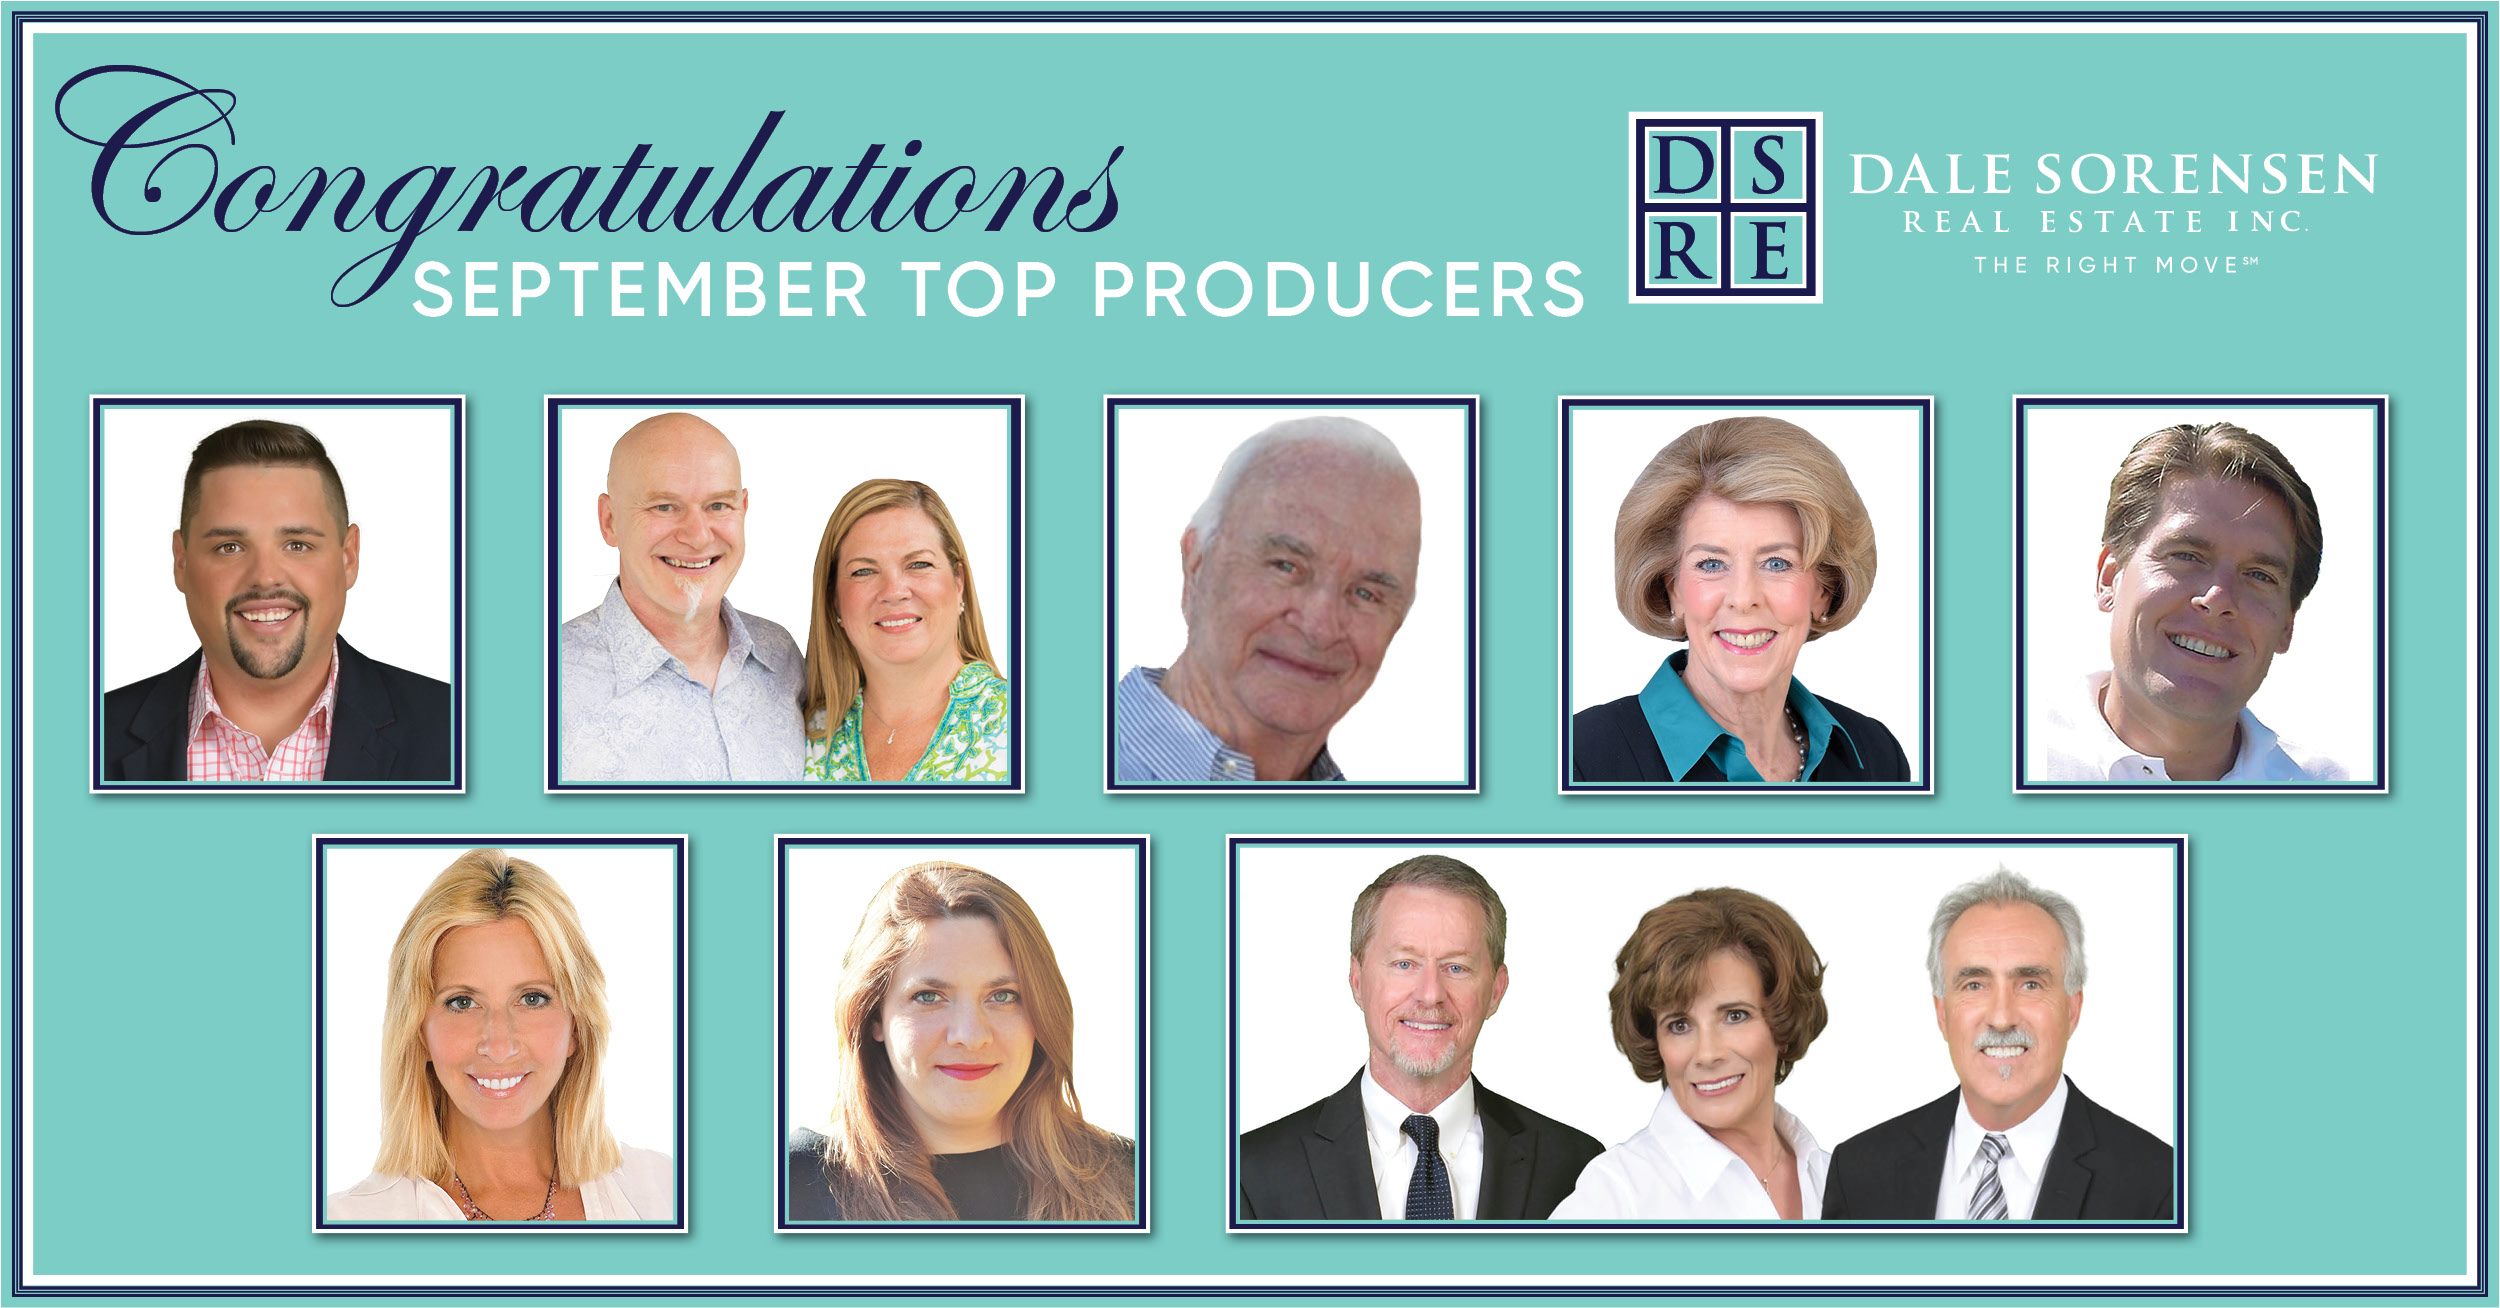 Congratulations September Top Producers DSRE Dale Sorensen Real Estate Inc. THE RIGHT MOVE